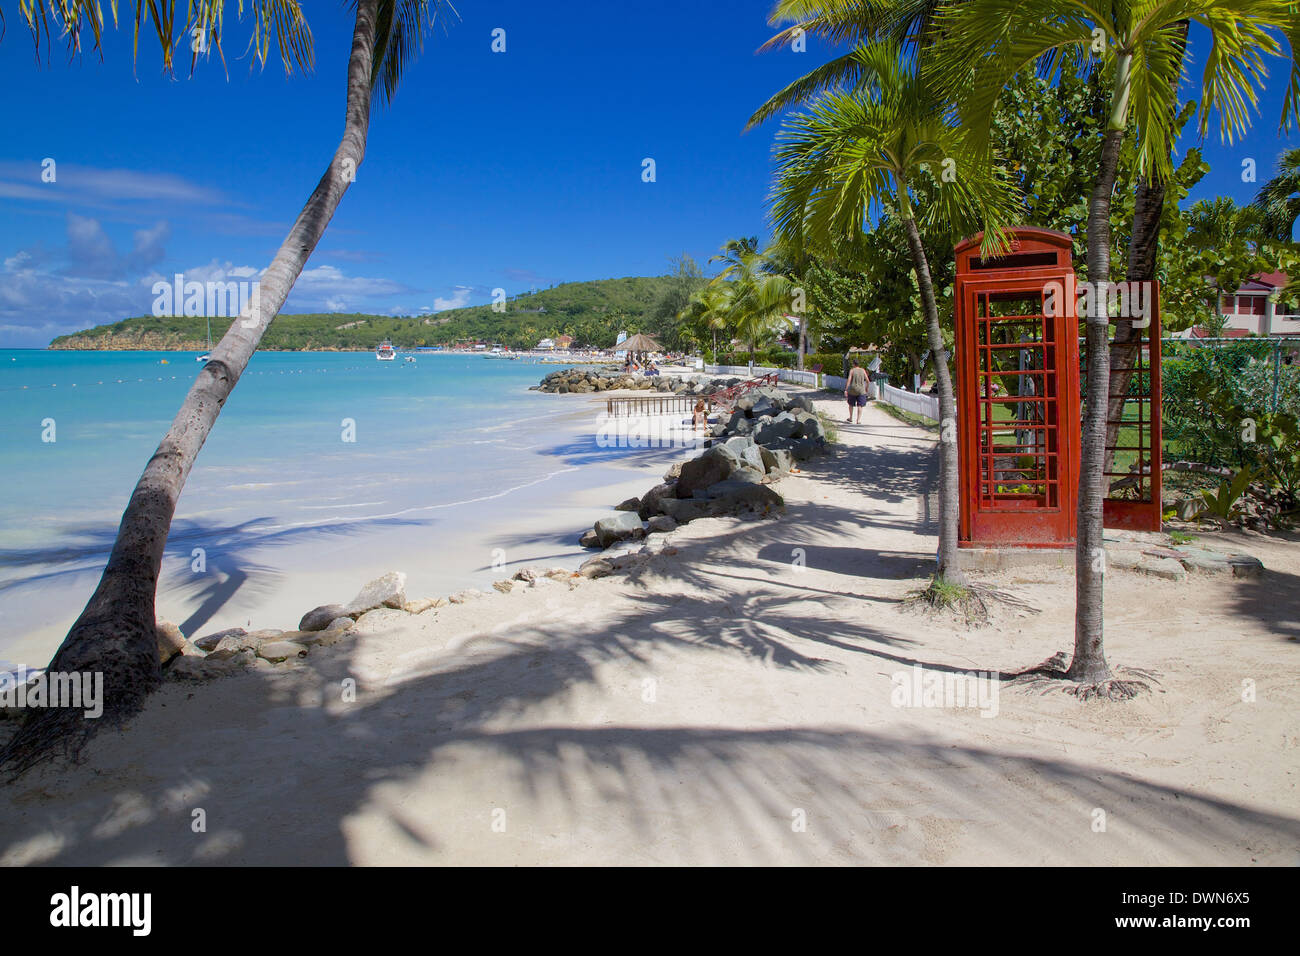 Beach and red telephone box, Dickenson Bay, St. Georges, Antigua, Leeward Islands, West Indies, Caribbean, Central America - Stock Image